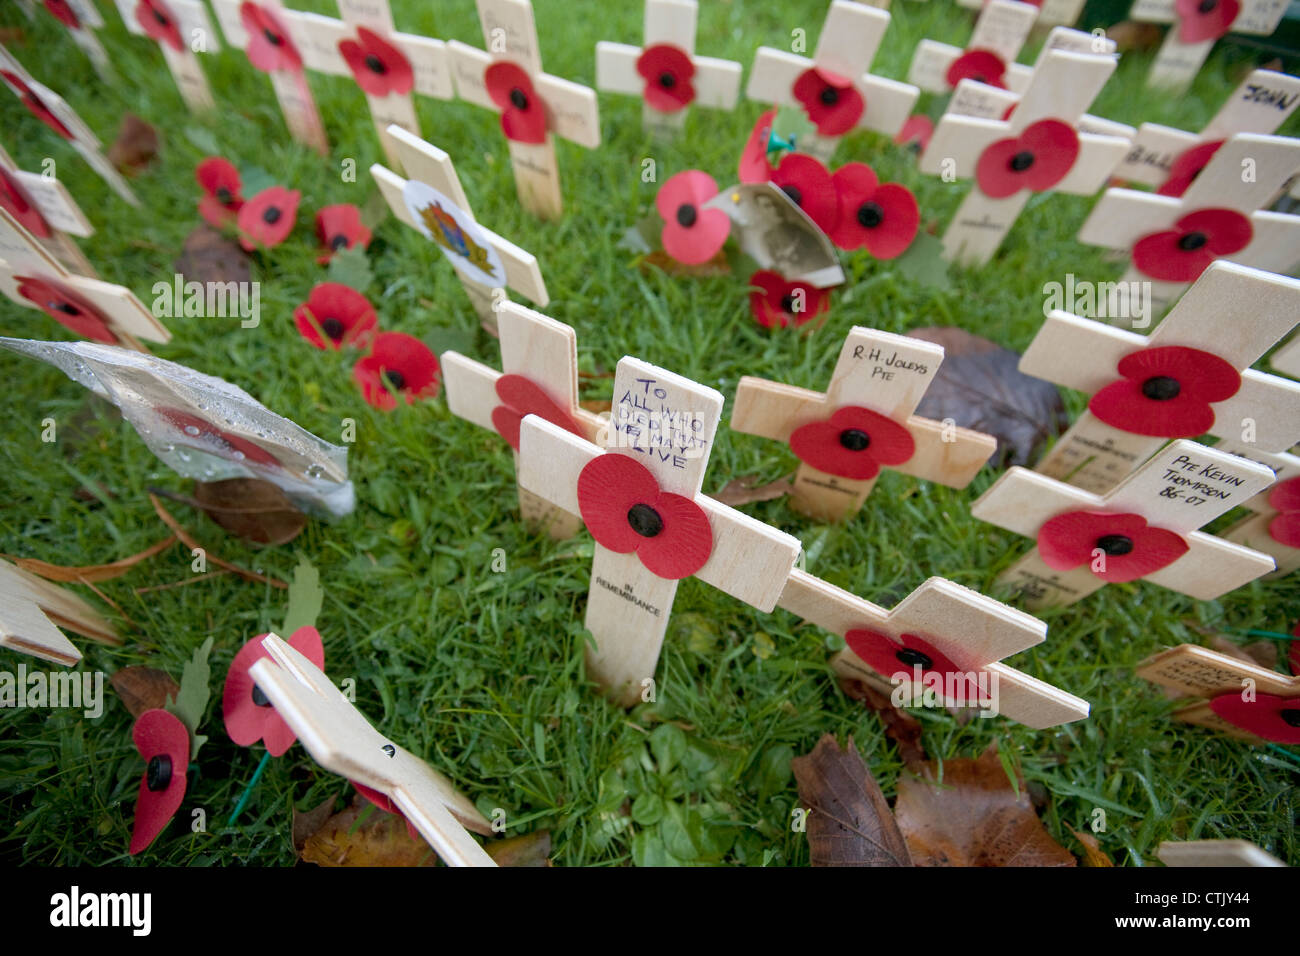 wooden poppy crosses with old photographs in annual Field of Remembrance for casualties of war on armistice day - Stock Image